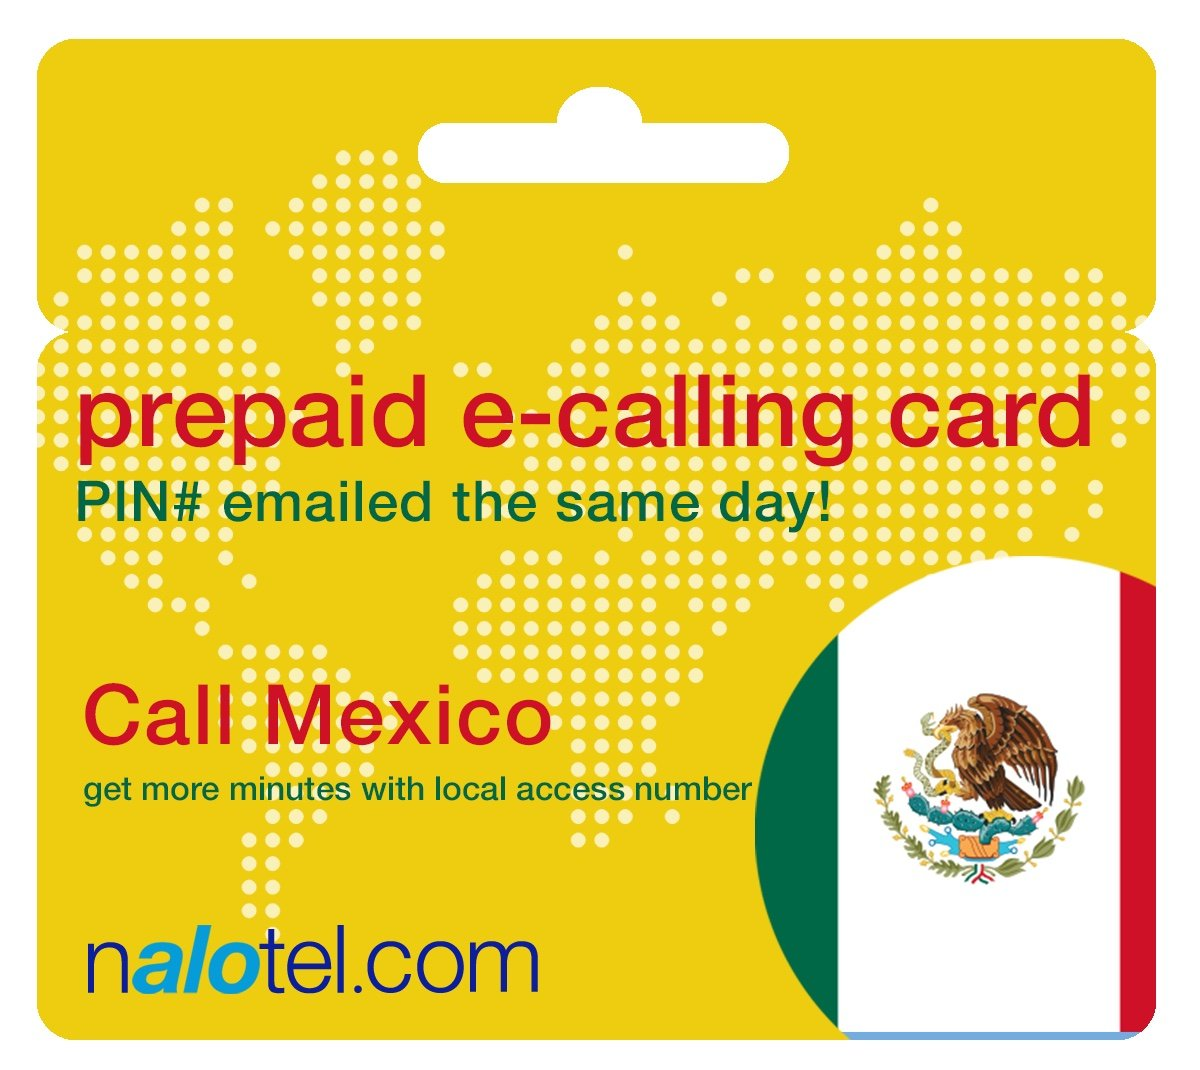 Prepaid Phone Card - Cheap International E-Calling Card $10 for Mexico with same day emailed PIN, no postage necessary